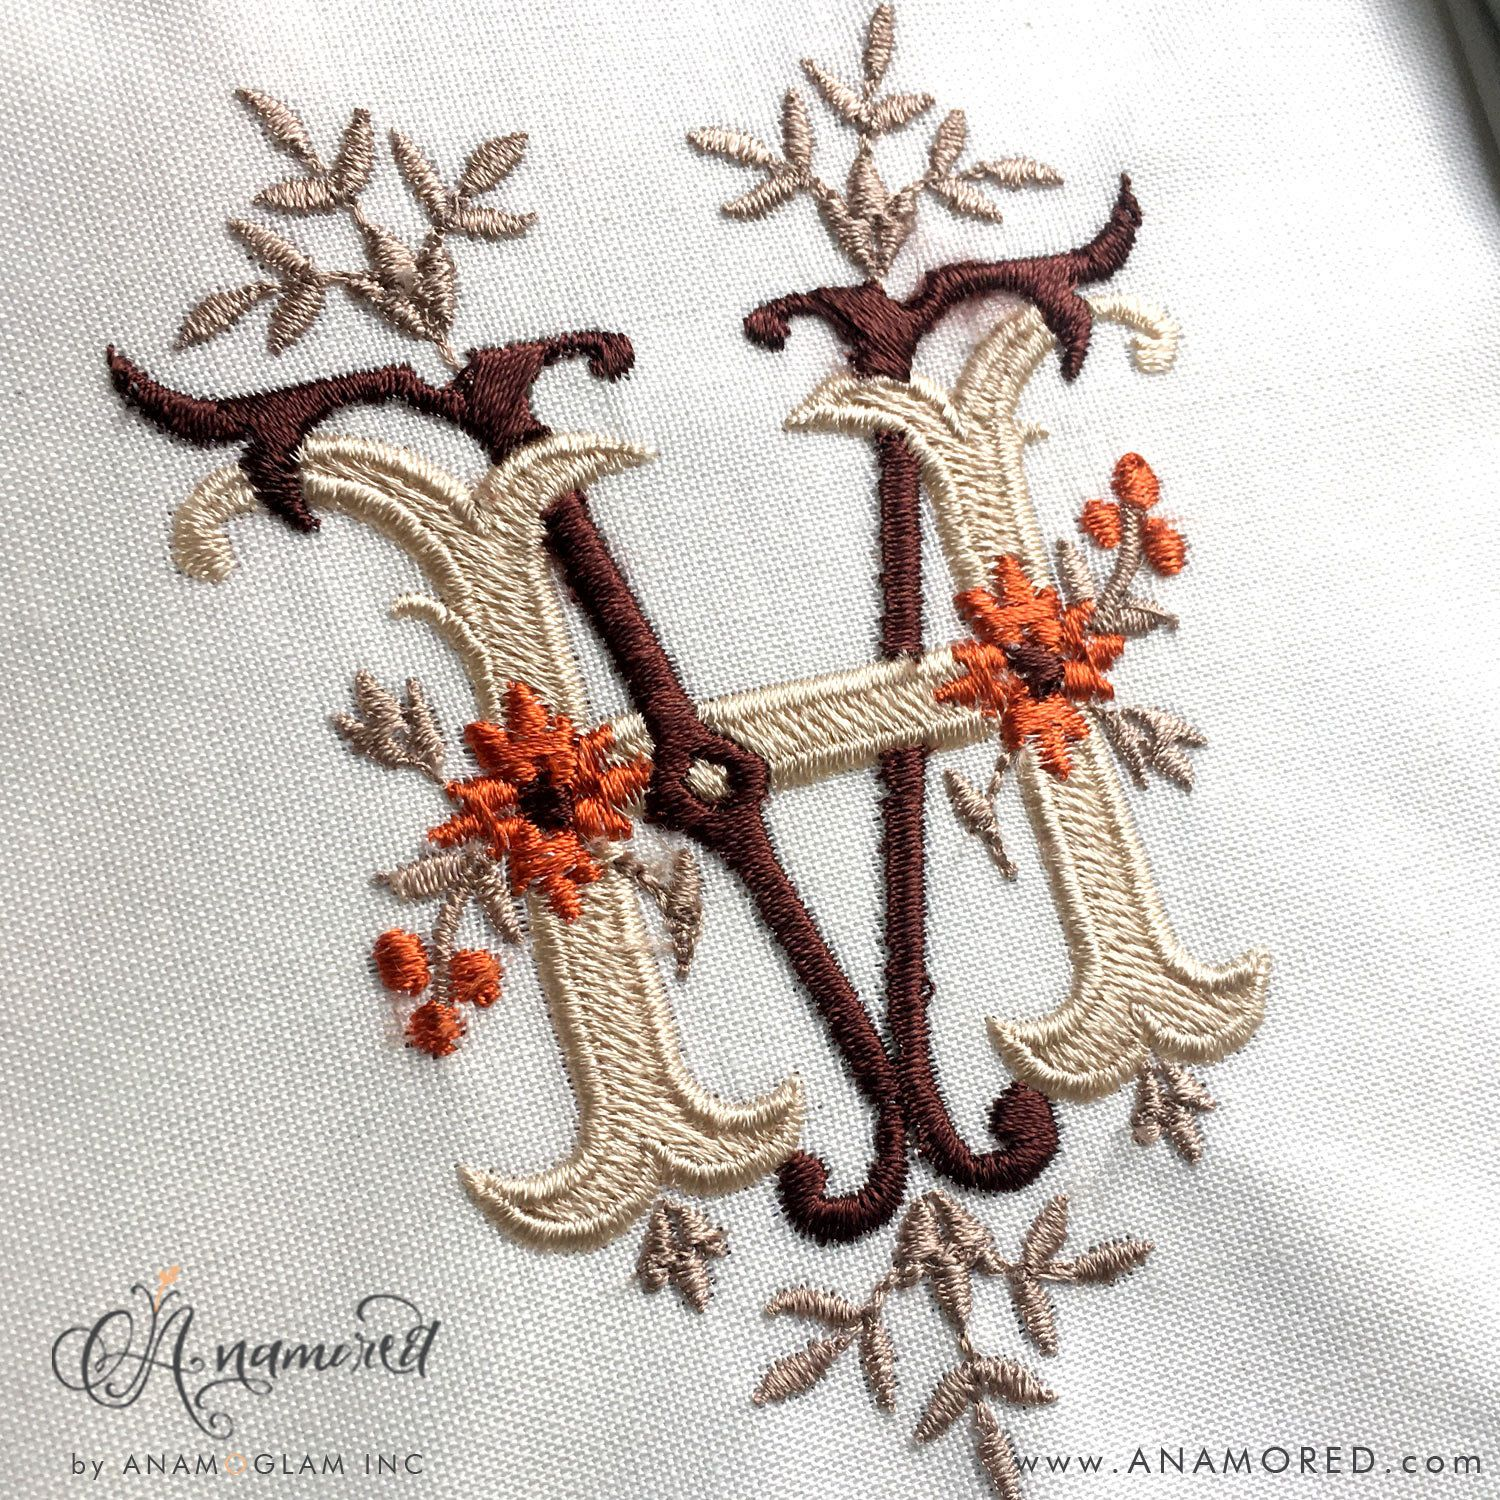 Choose Your Initials for Monogrammed